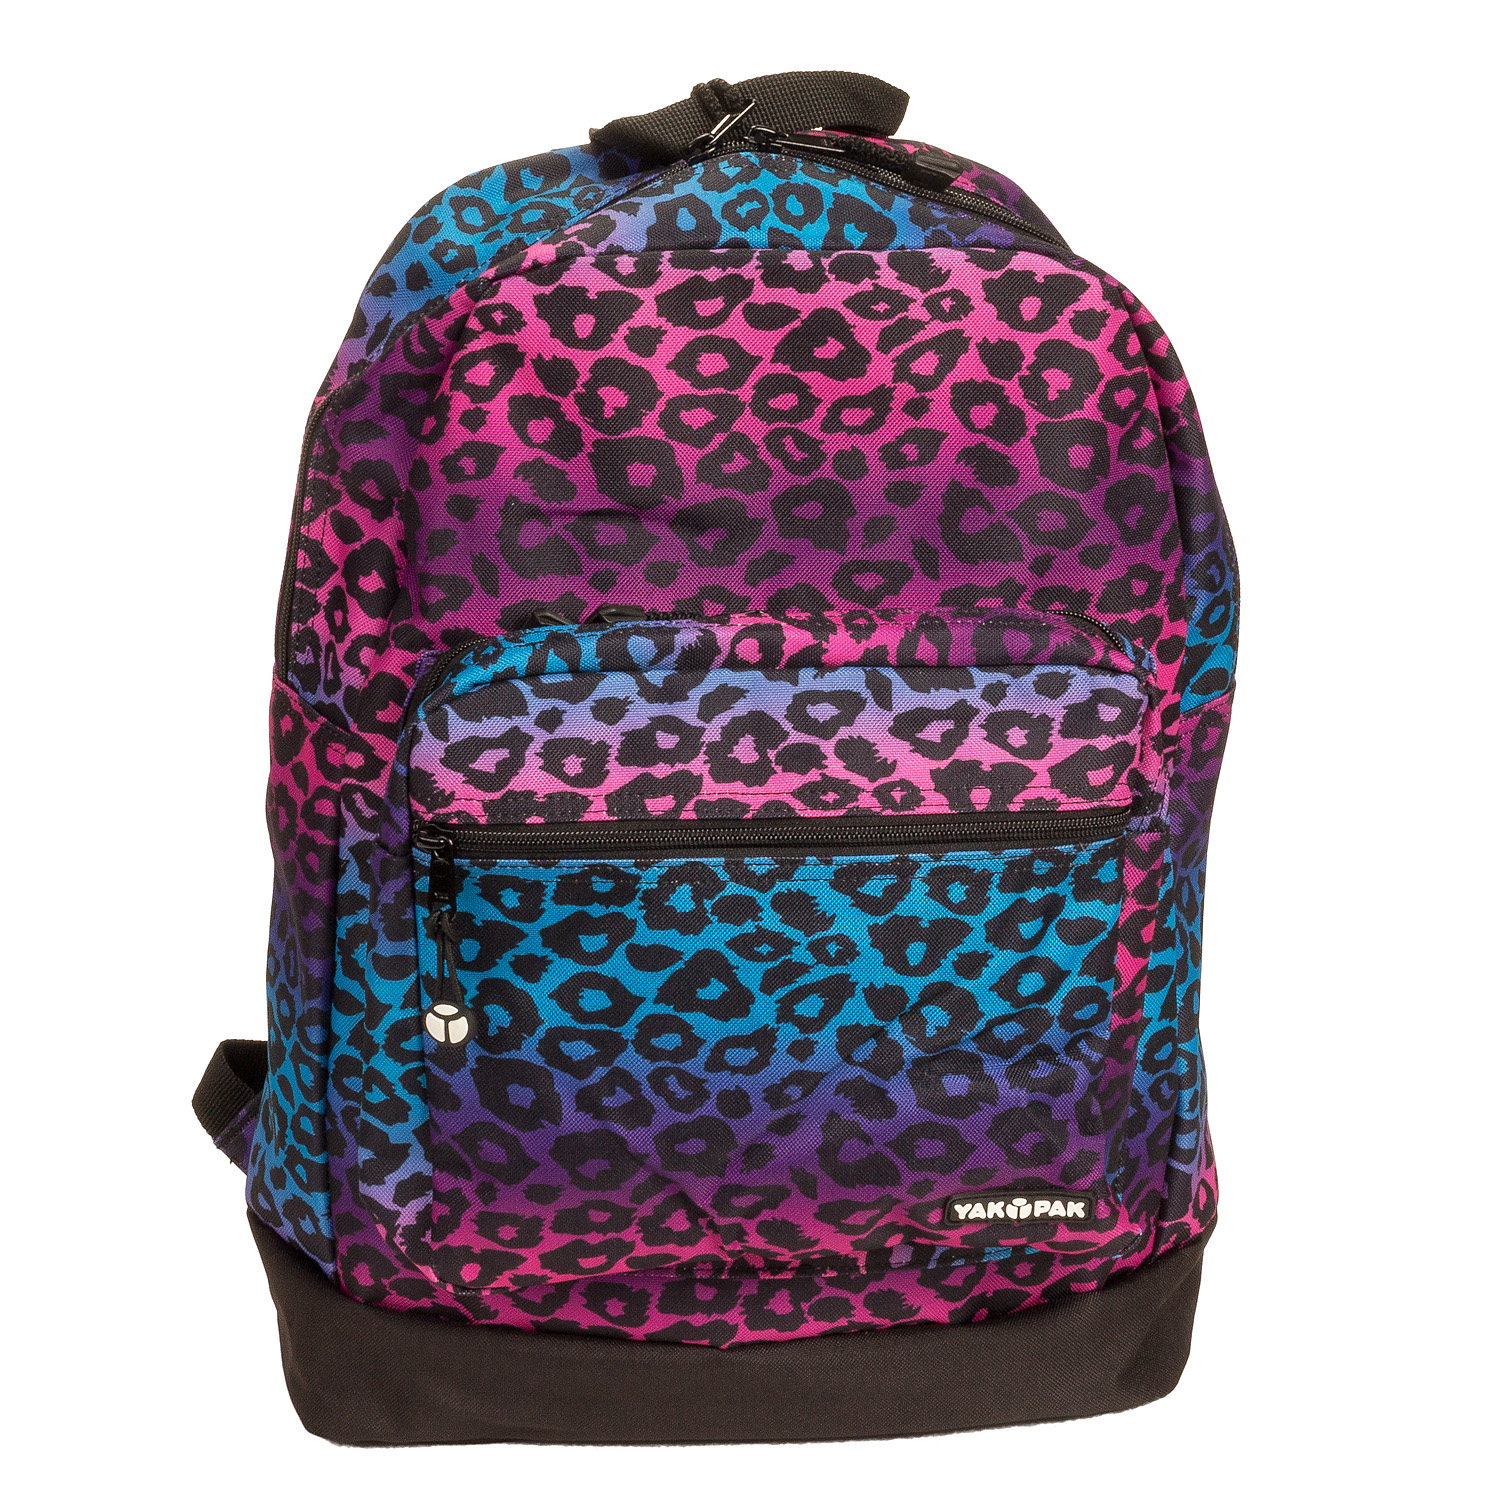 Yak Pak Purple Ombre Leopard Deluxe Backpack - Student School Laptop ...